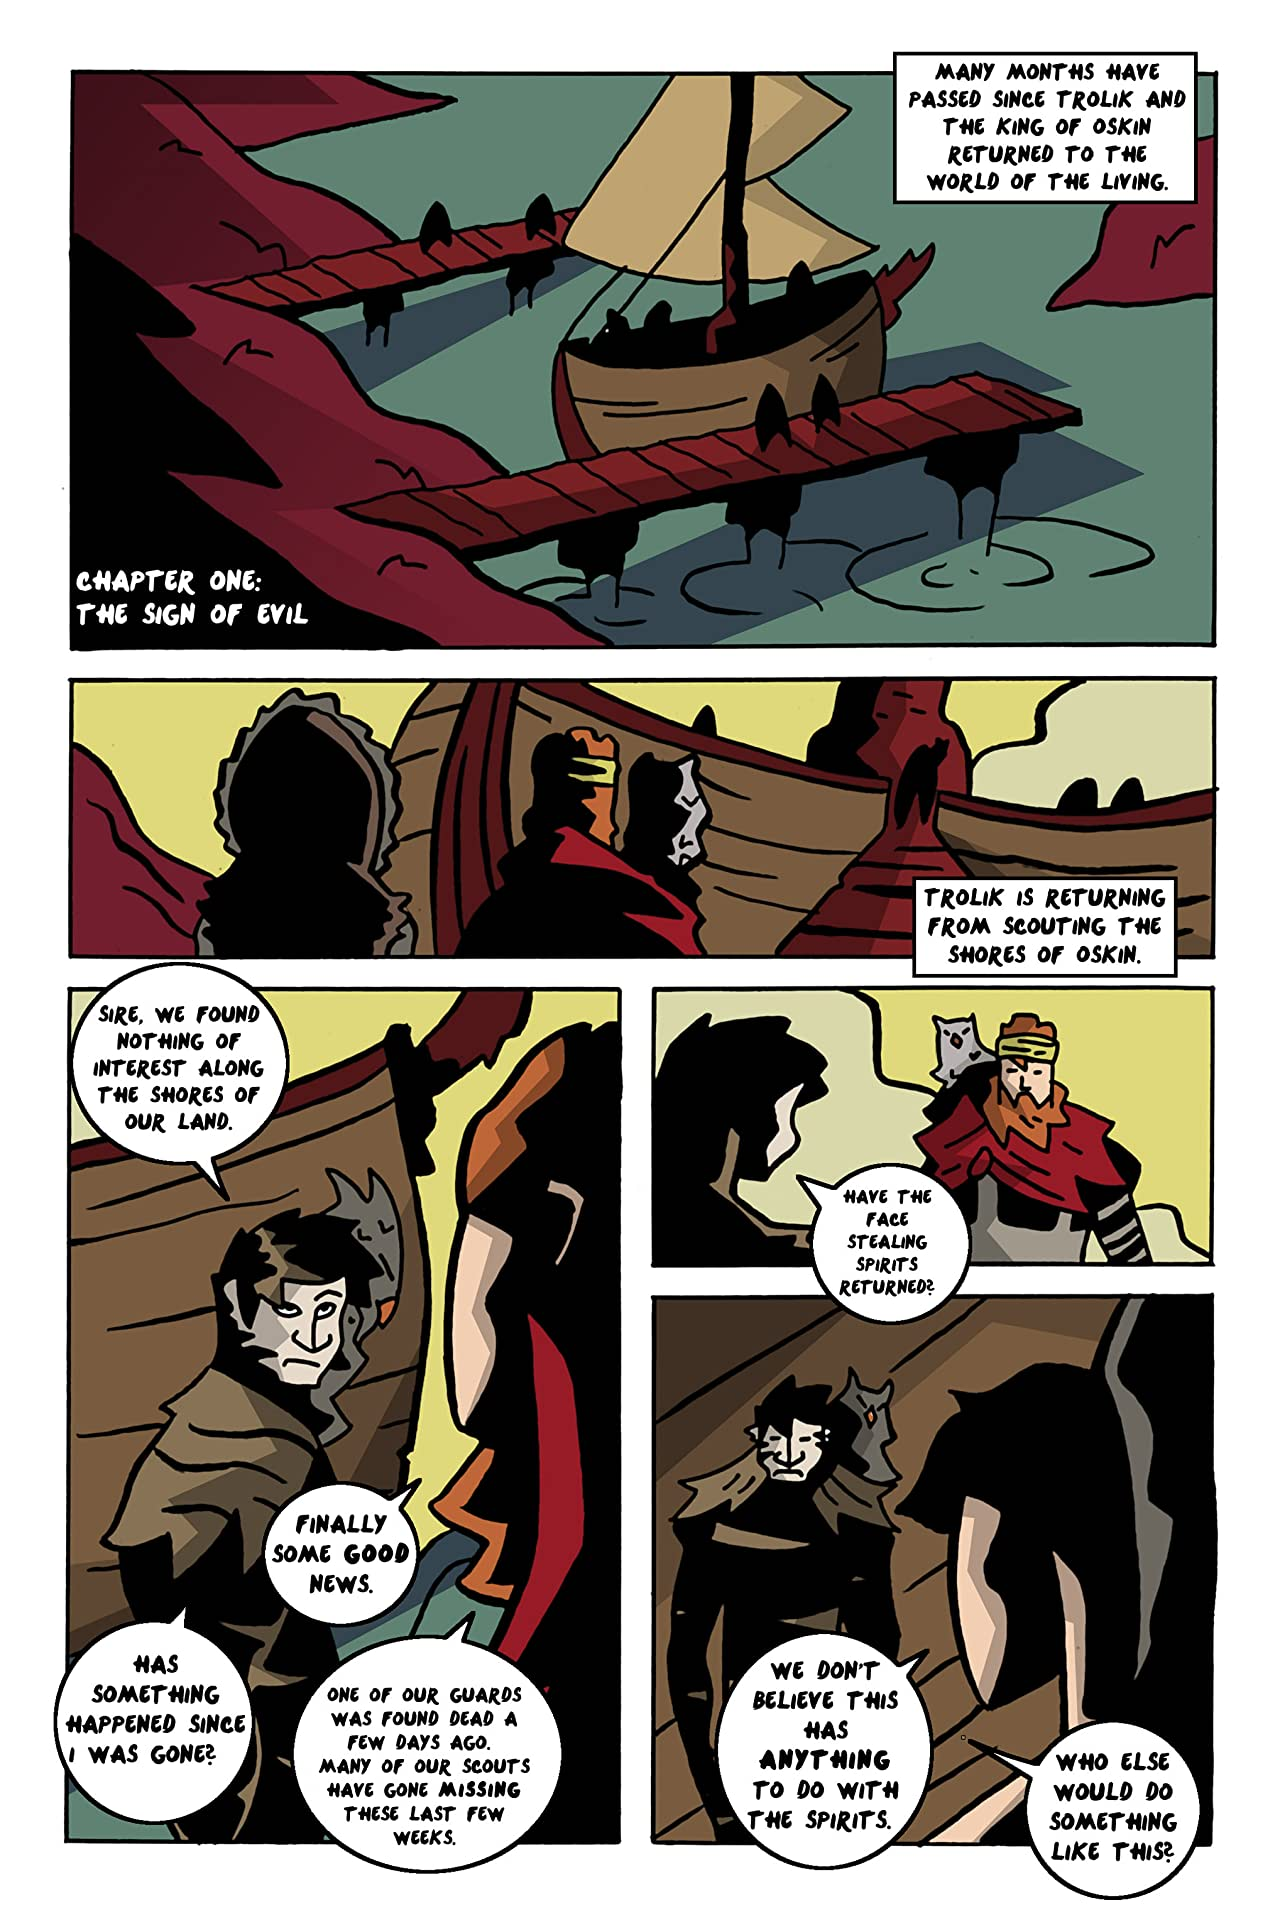 Tales of Trolik #3